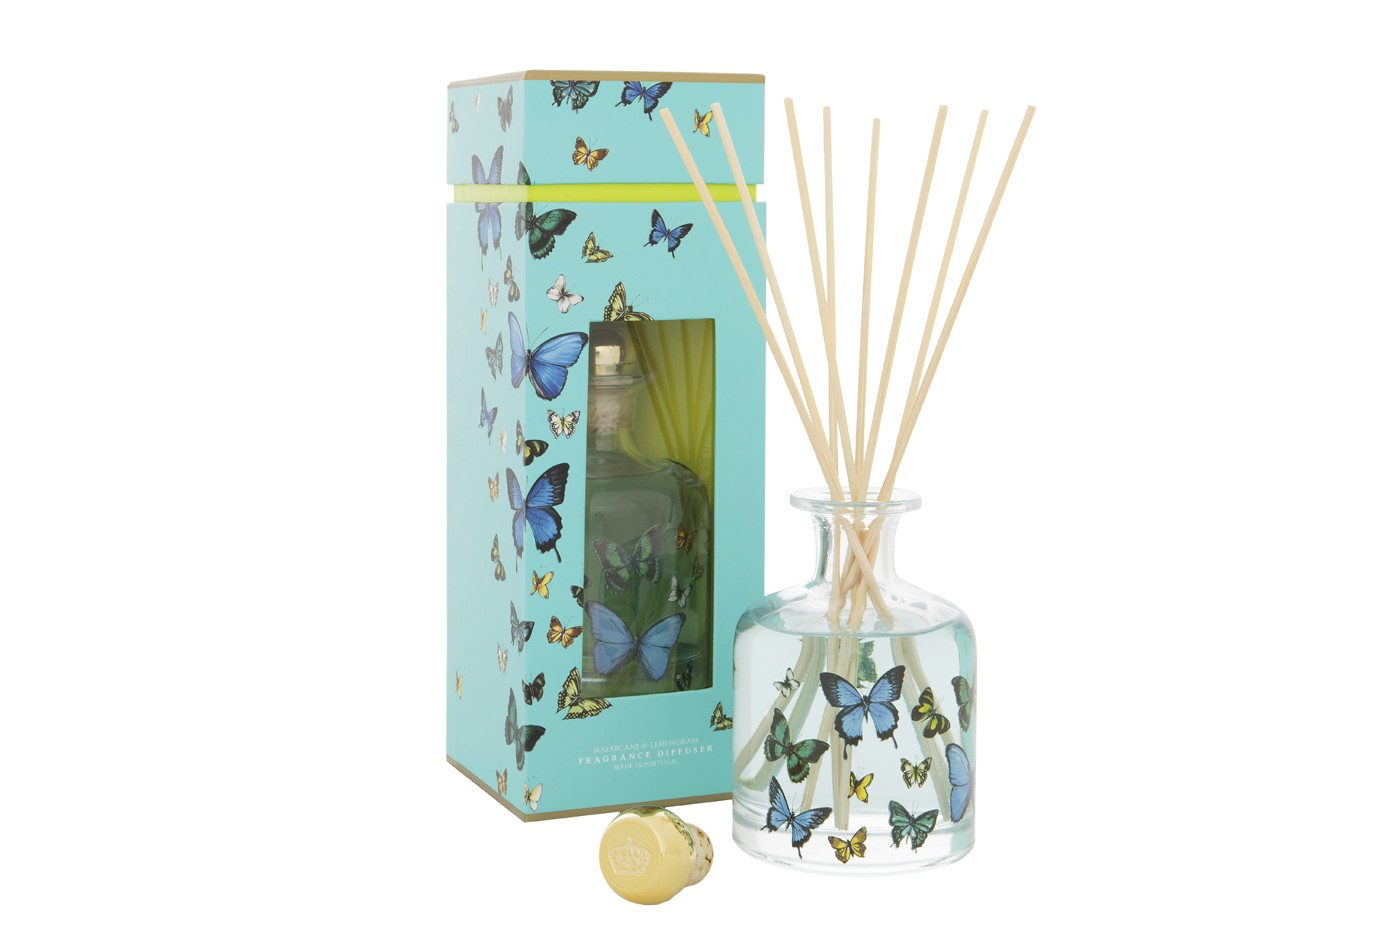 2-1404 PC Butterflies 250mL diffuser A